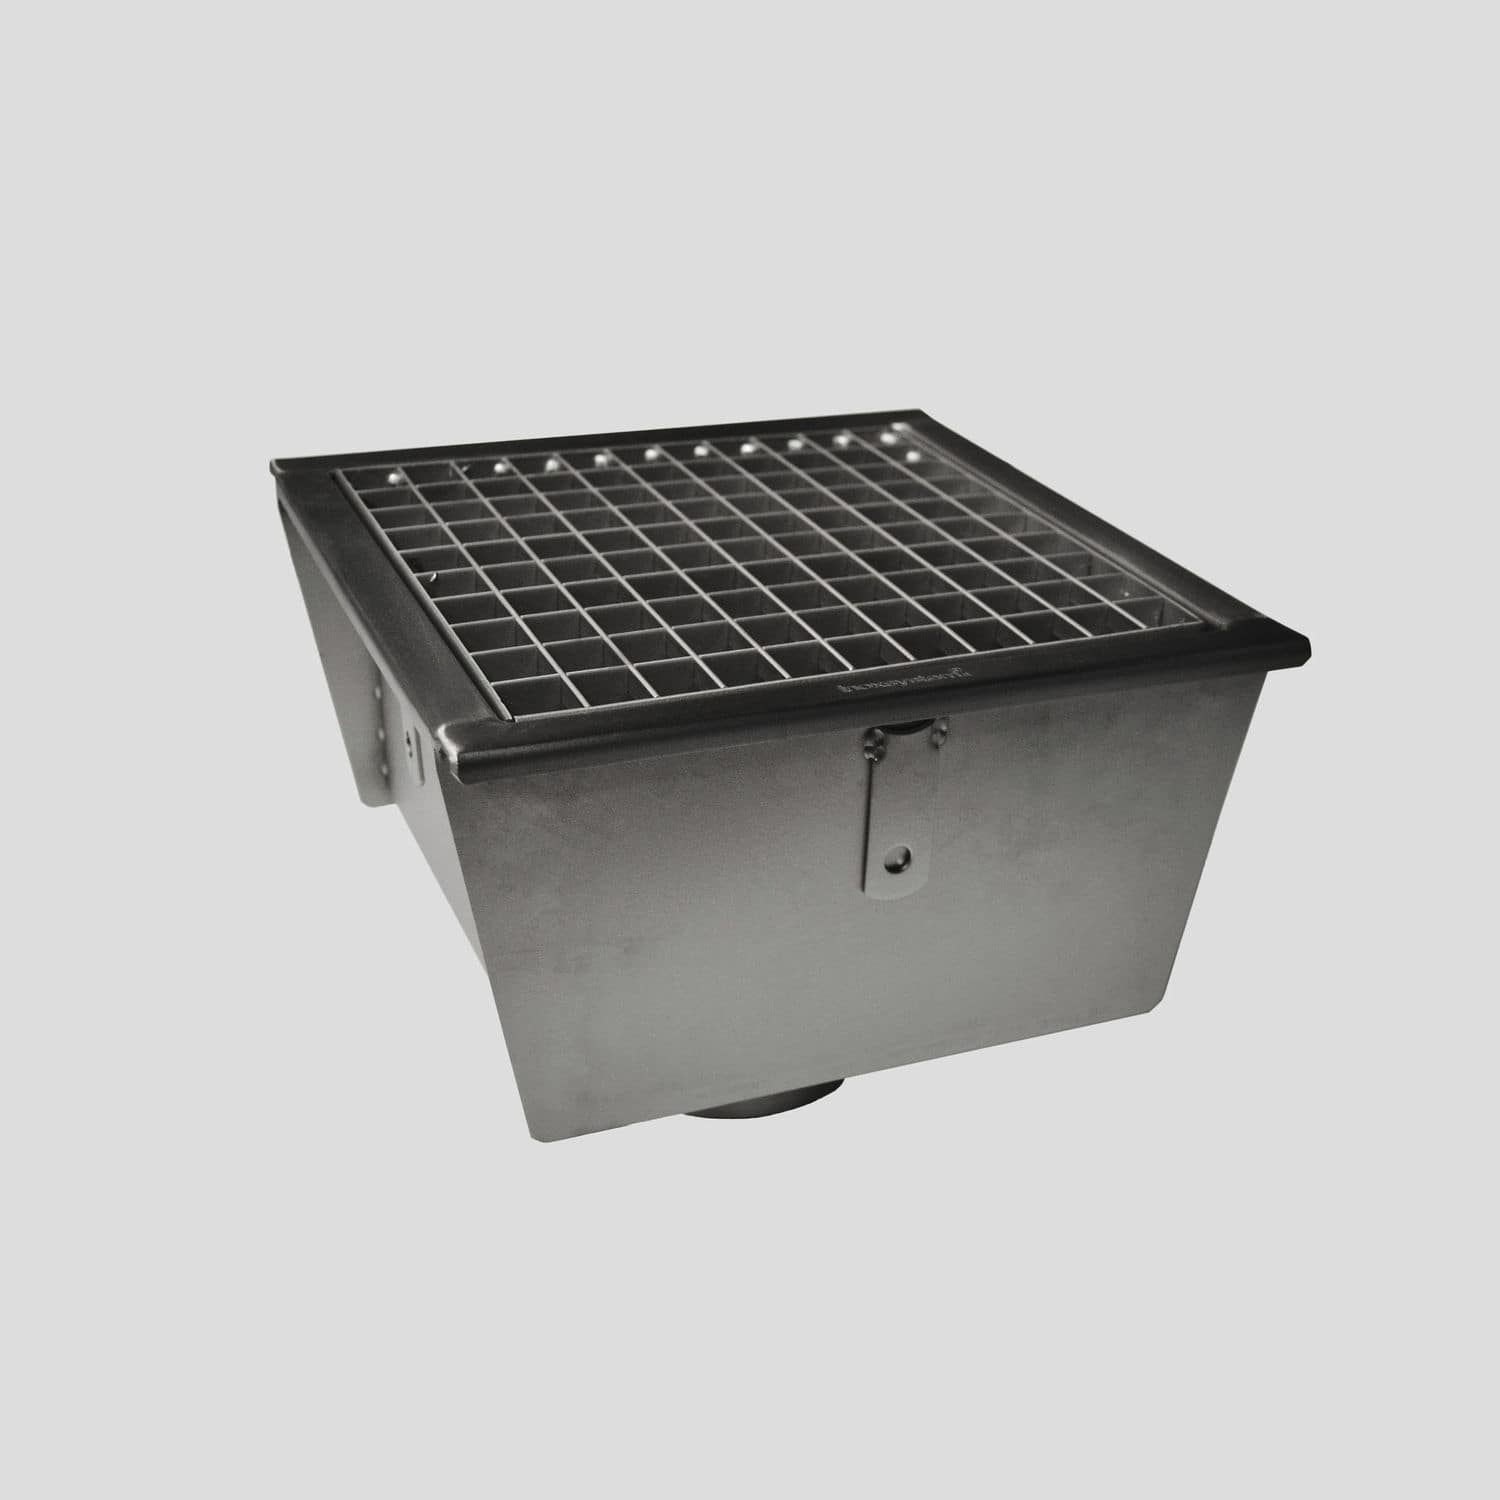 Stainless Steel Floor Drain / Square / Patio / Grated   0501